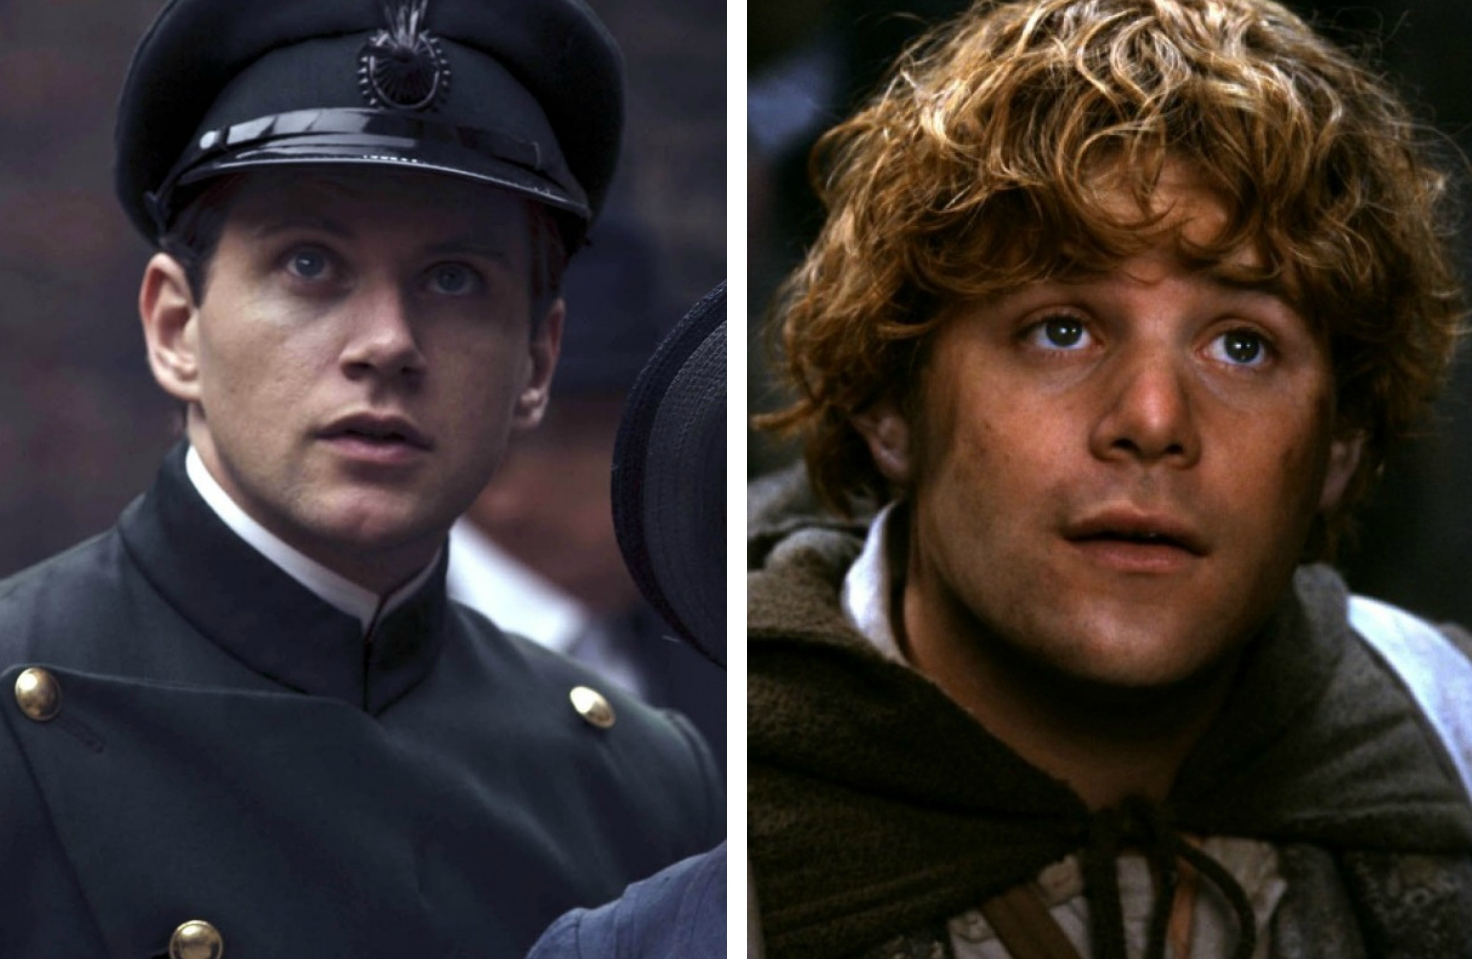 Allen Leech as Tom Branson vs Sean Astin as Samwise «Sam» Gamgee